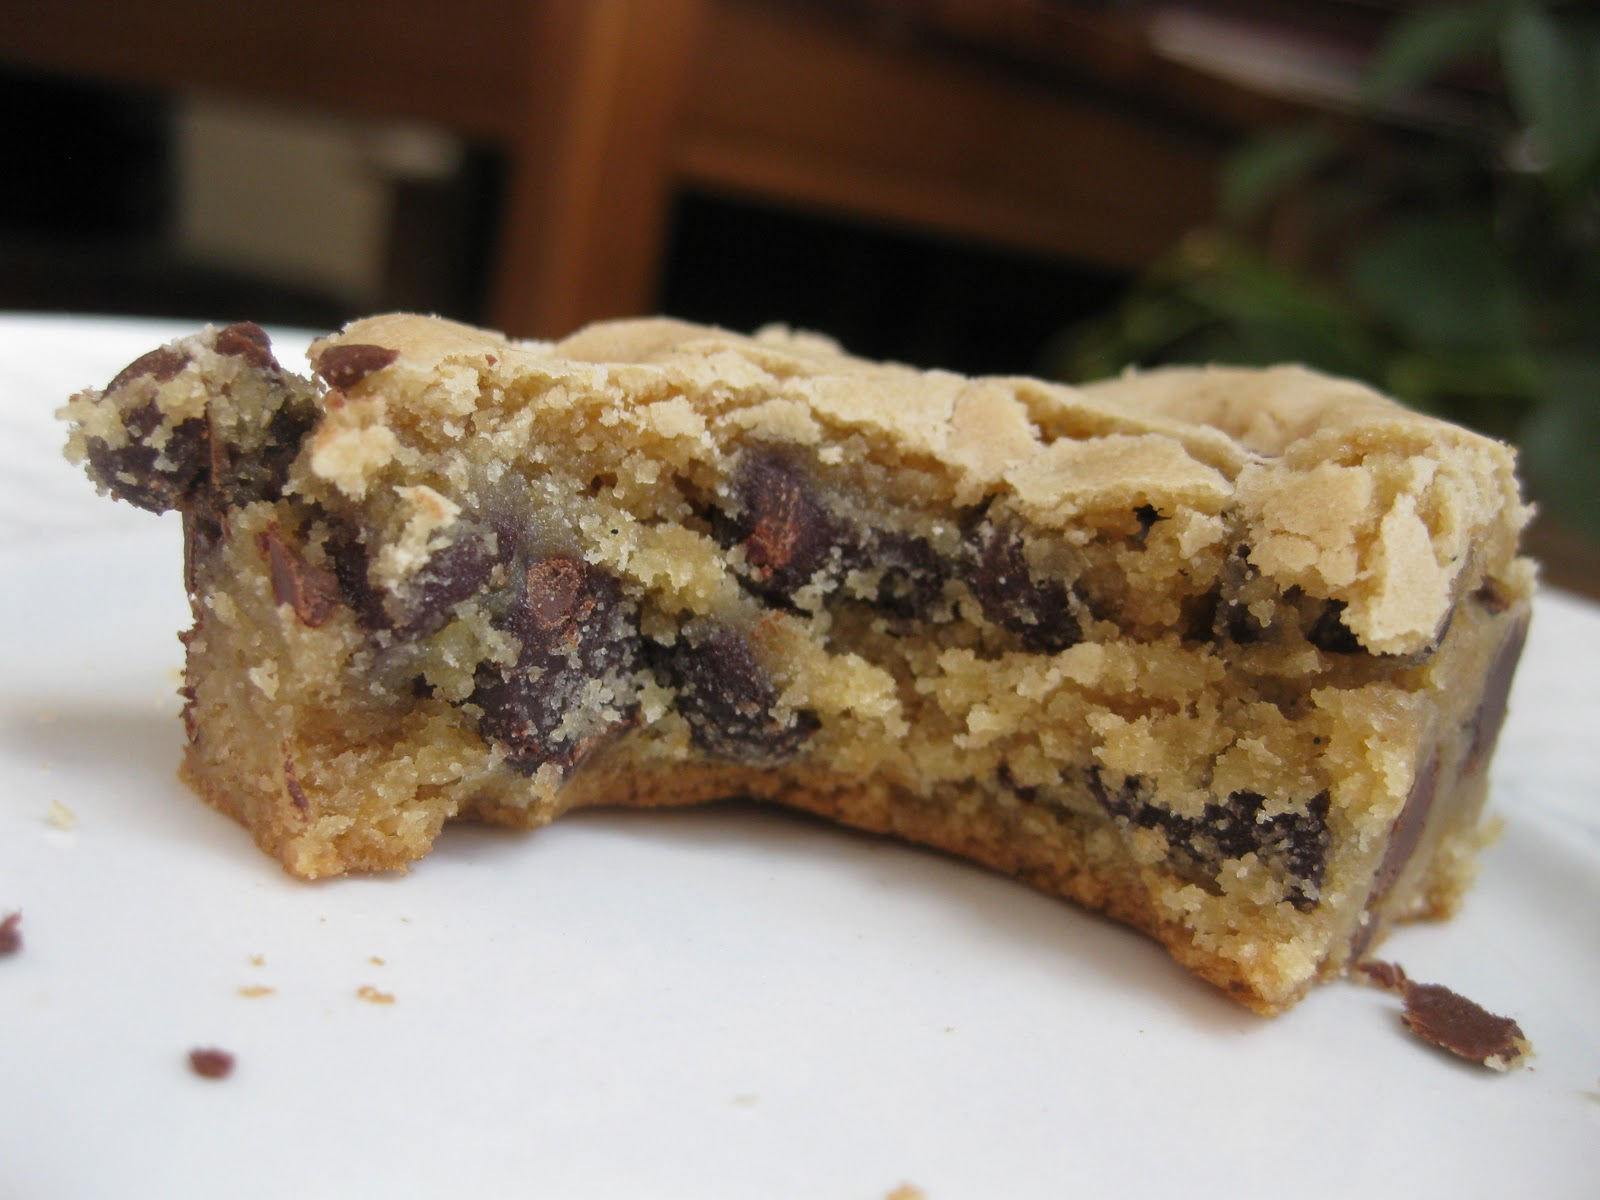 Sunday Treats: Chewy Chocolate Chip Cookie Bars